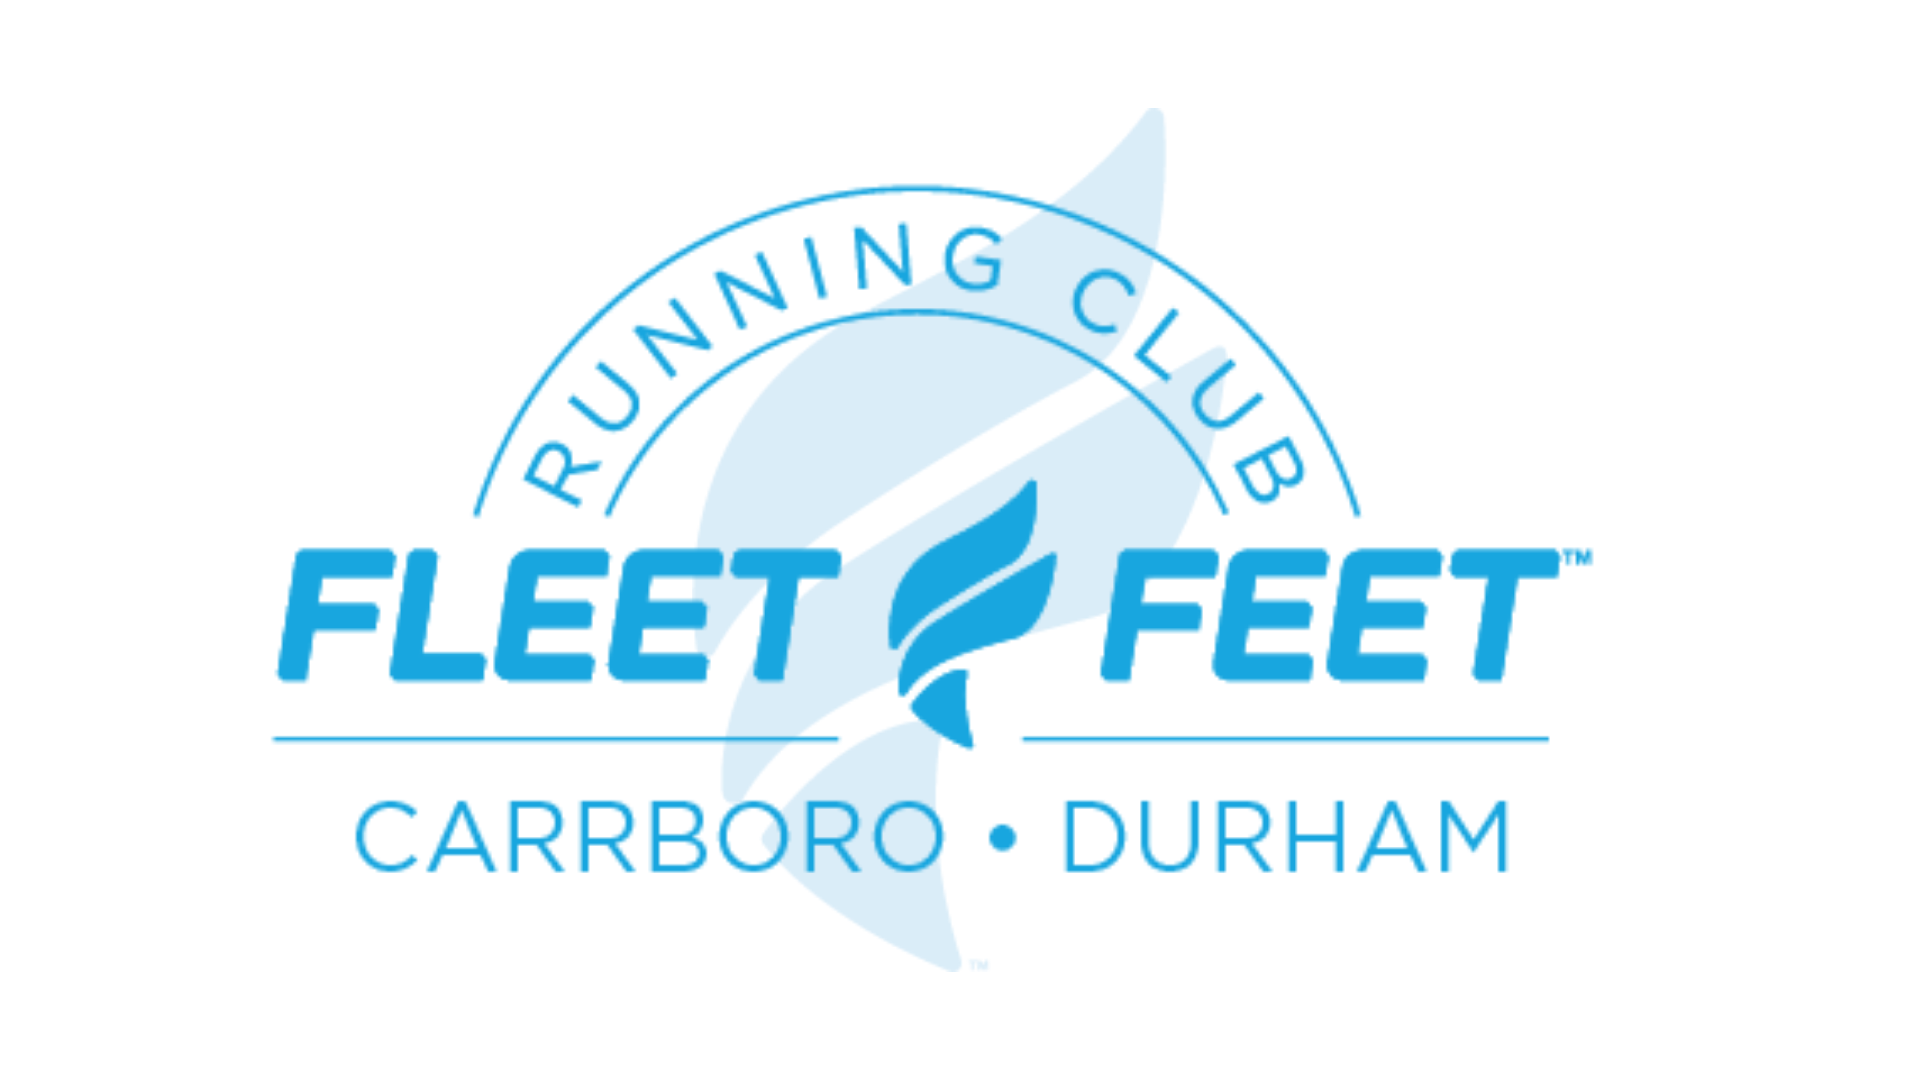 Fleet Feet Running Club - Carrboro & Durham